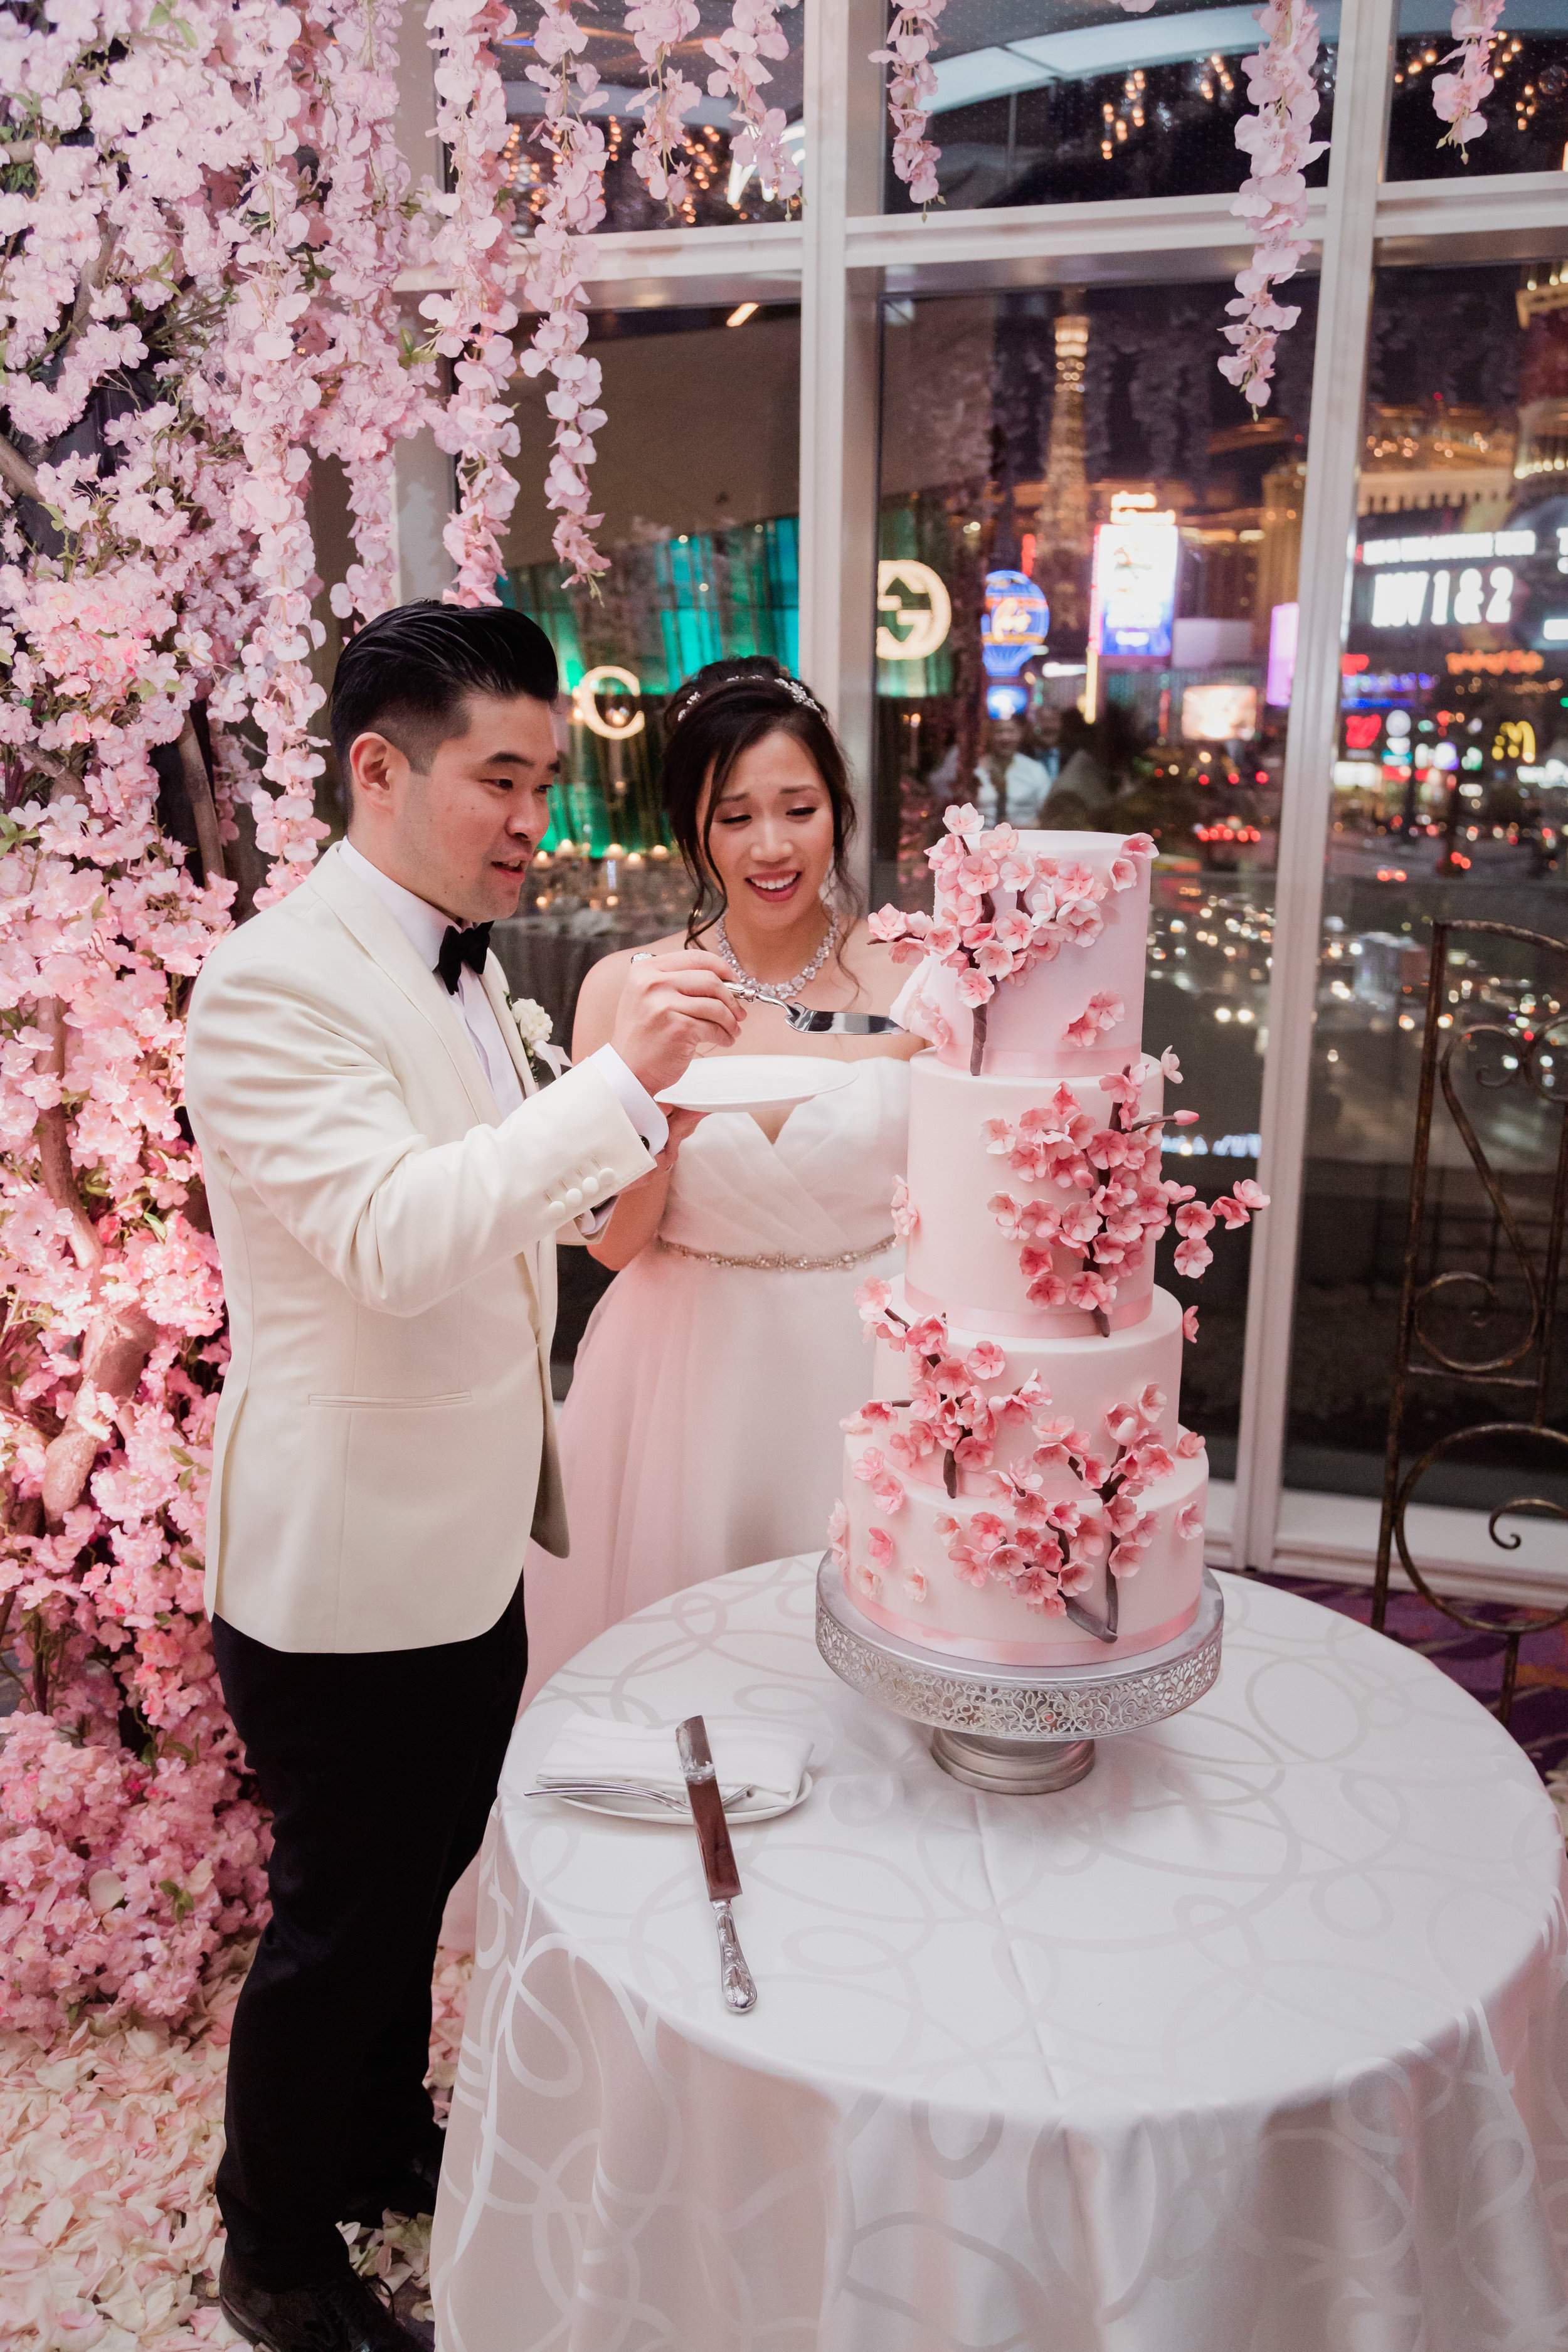 Bride and groom cutting a wedding cake with cherry blossoms on it. Las Vegas Wedding Planner Andrea Eppolito. Photo by Adam Frazier.